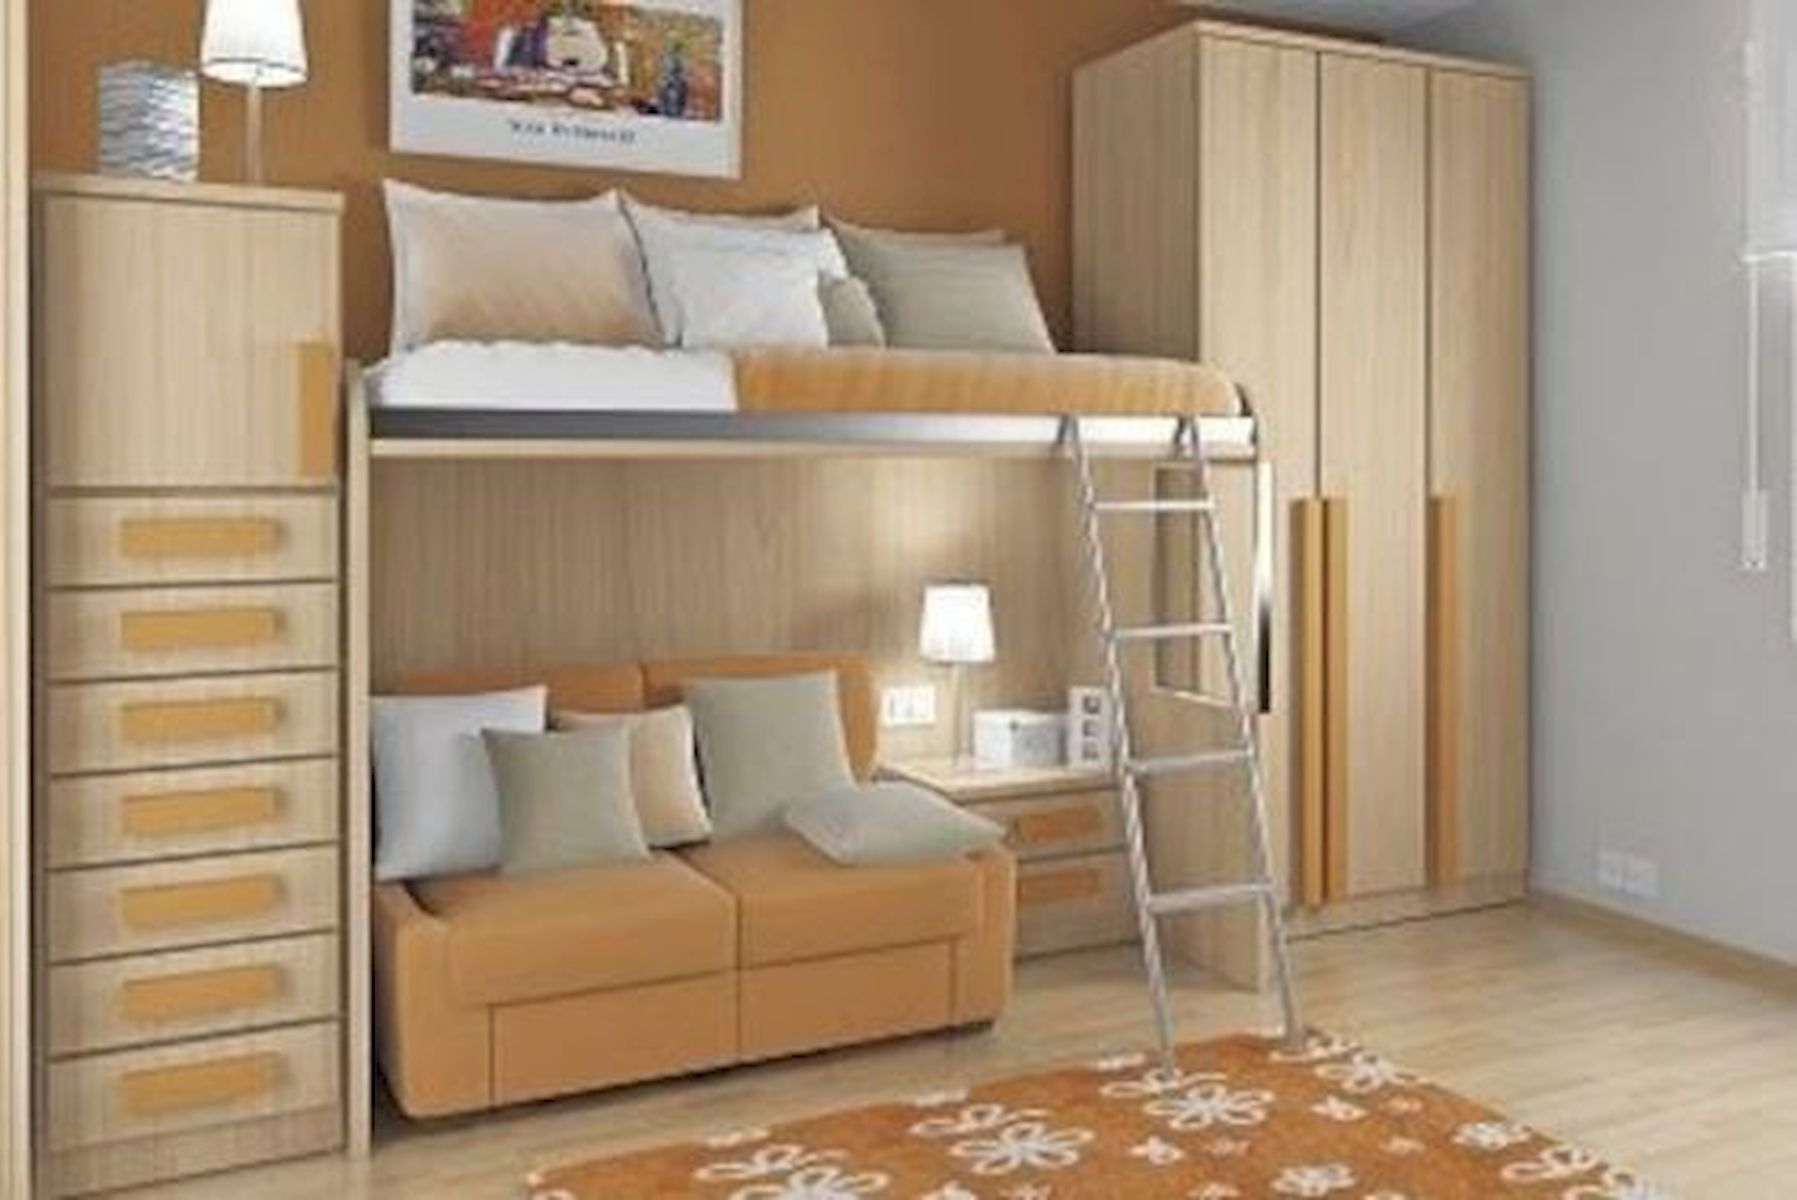 60 Easy And Brilliant DIY Storage Ideas For Small Bedroom (55)